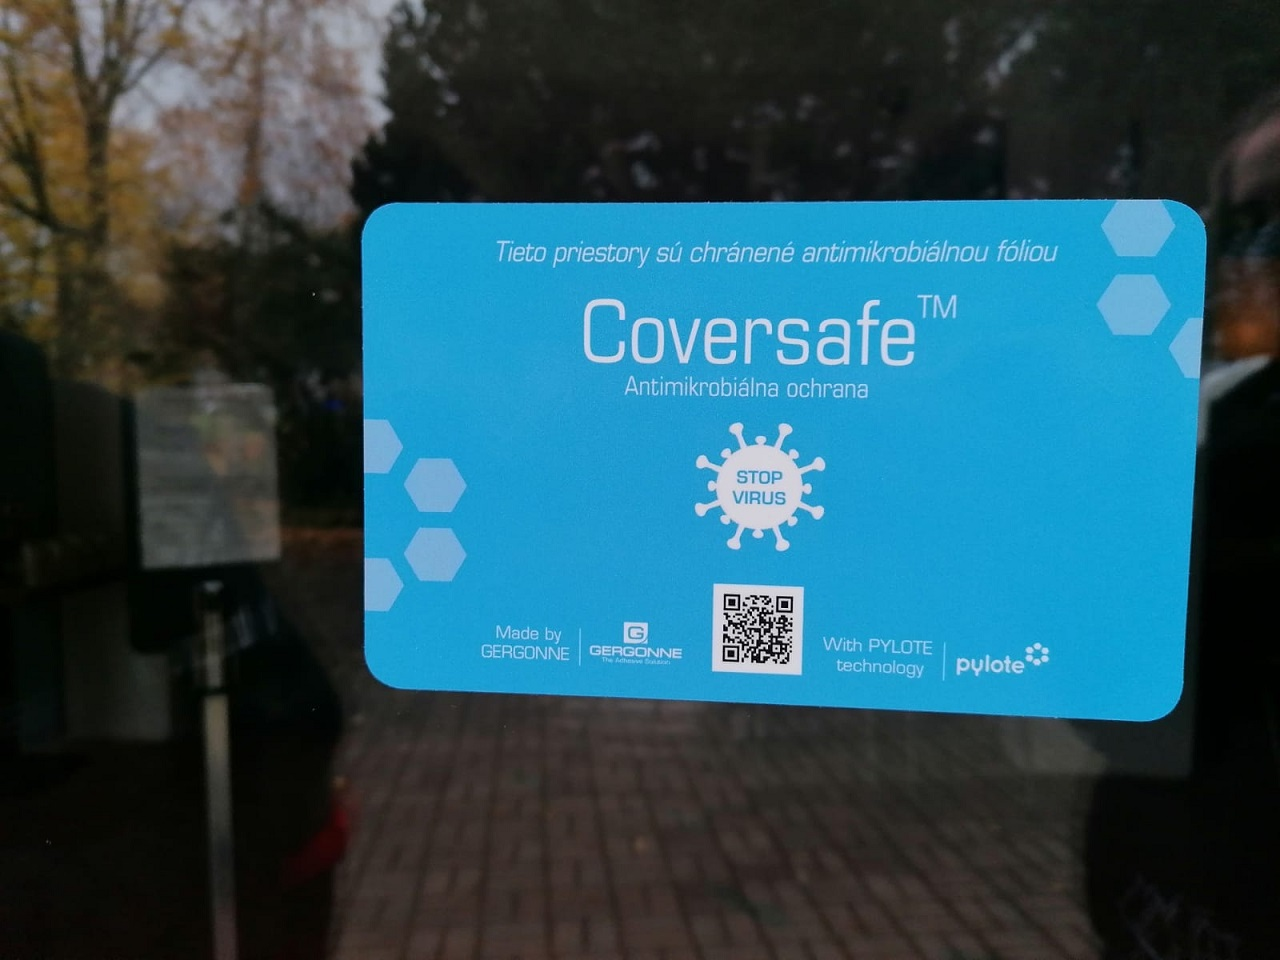 Coversafe